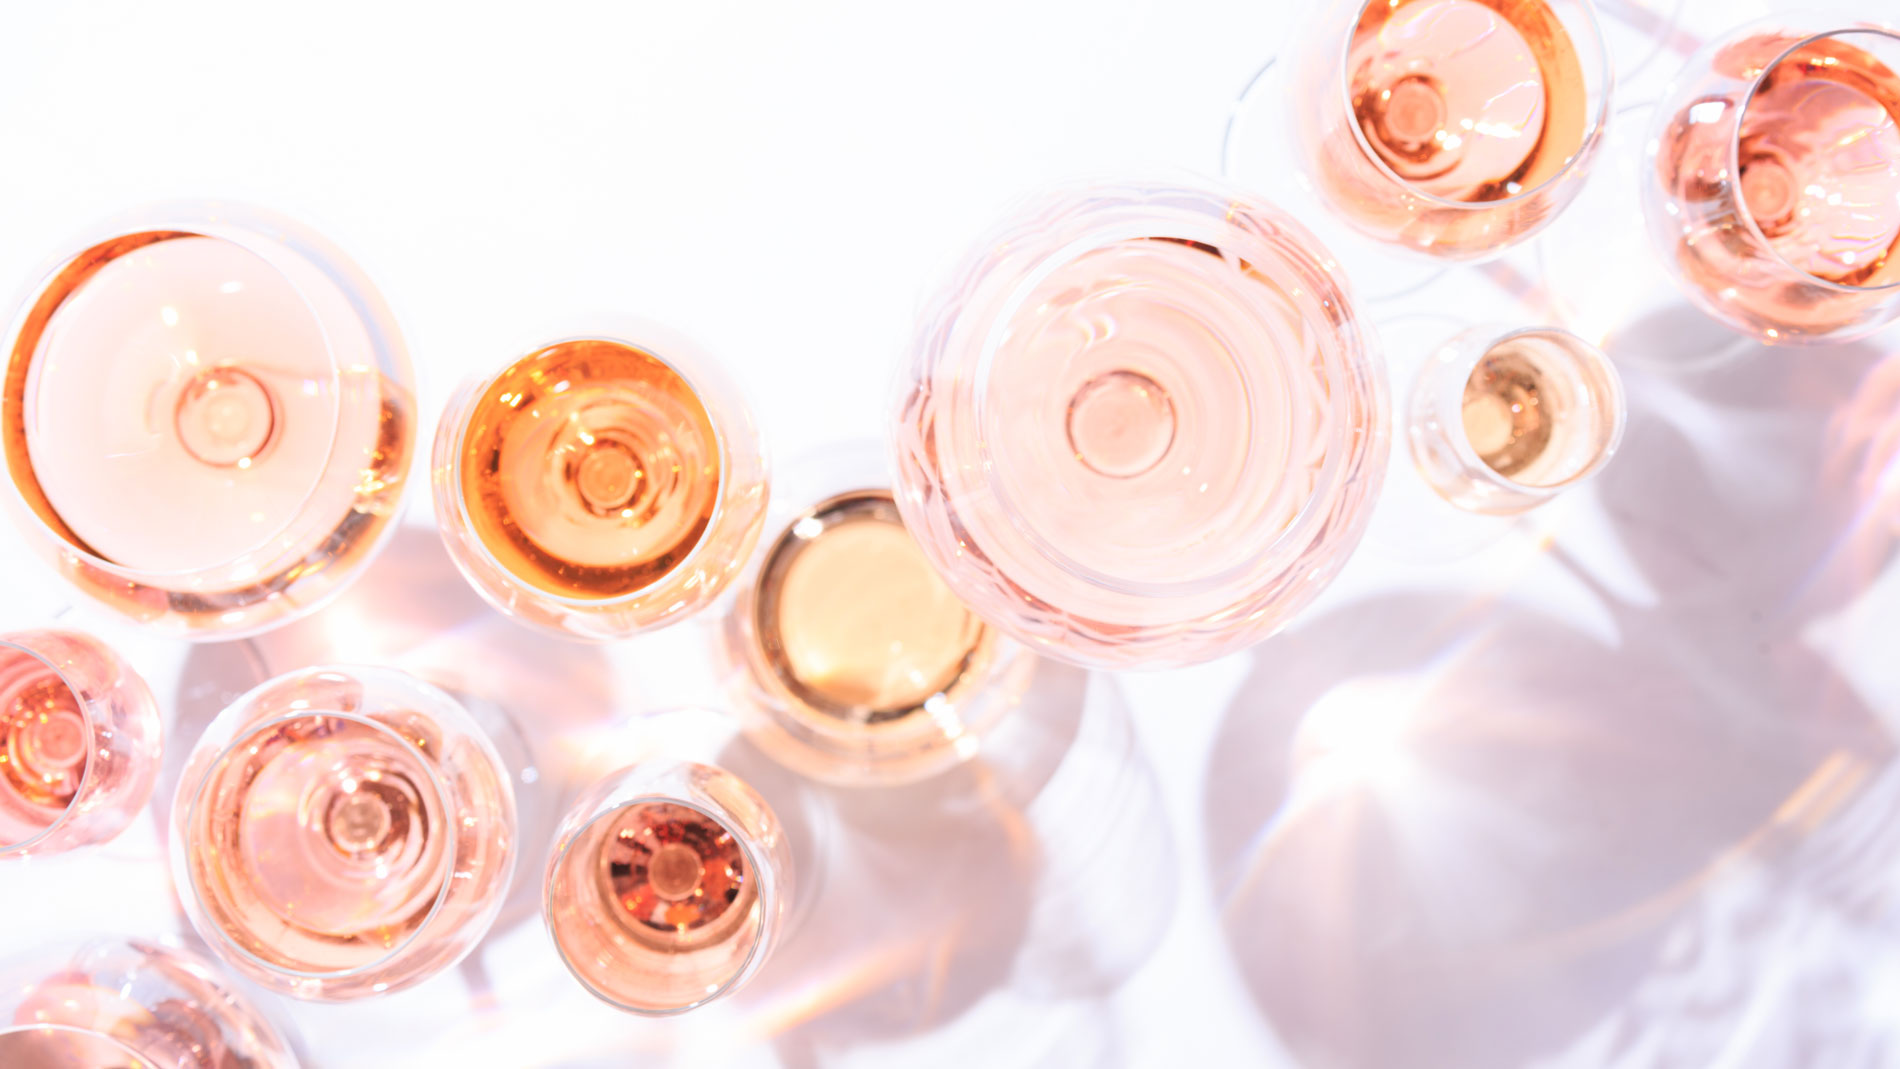 7 Delicious Rosé Wines for Mother's Day